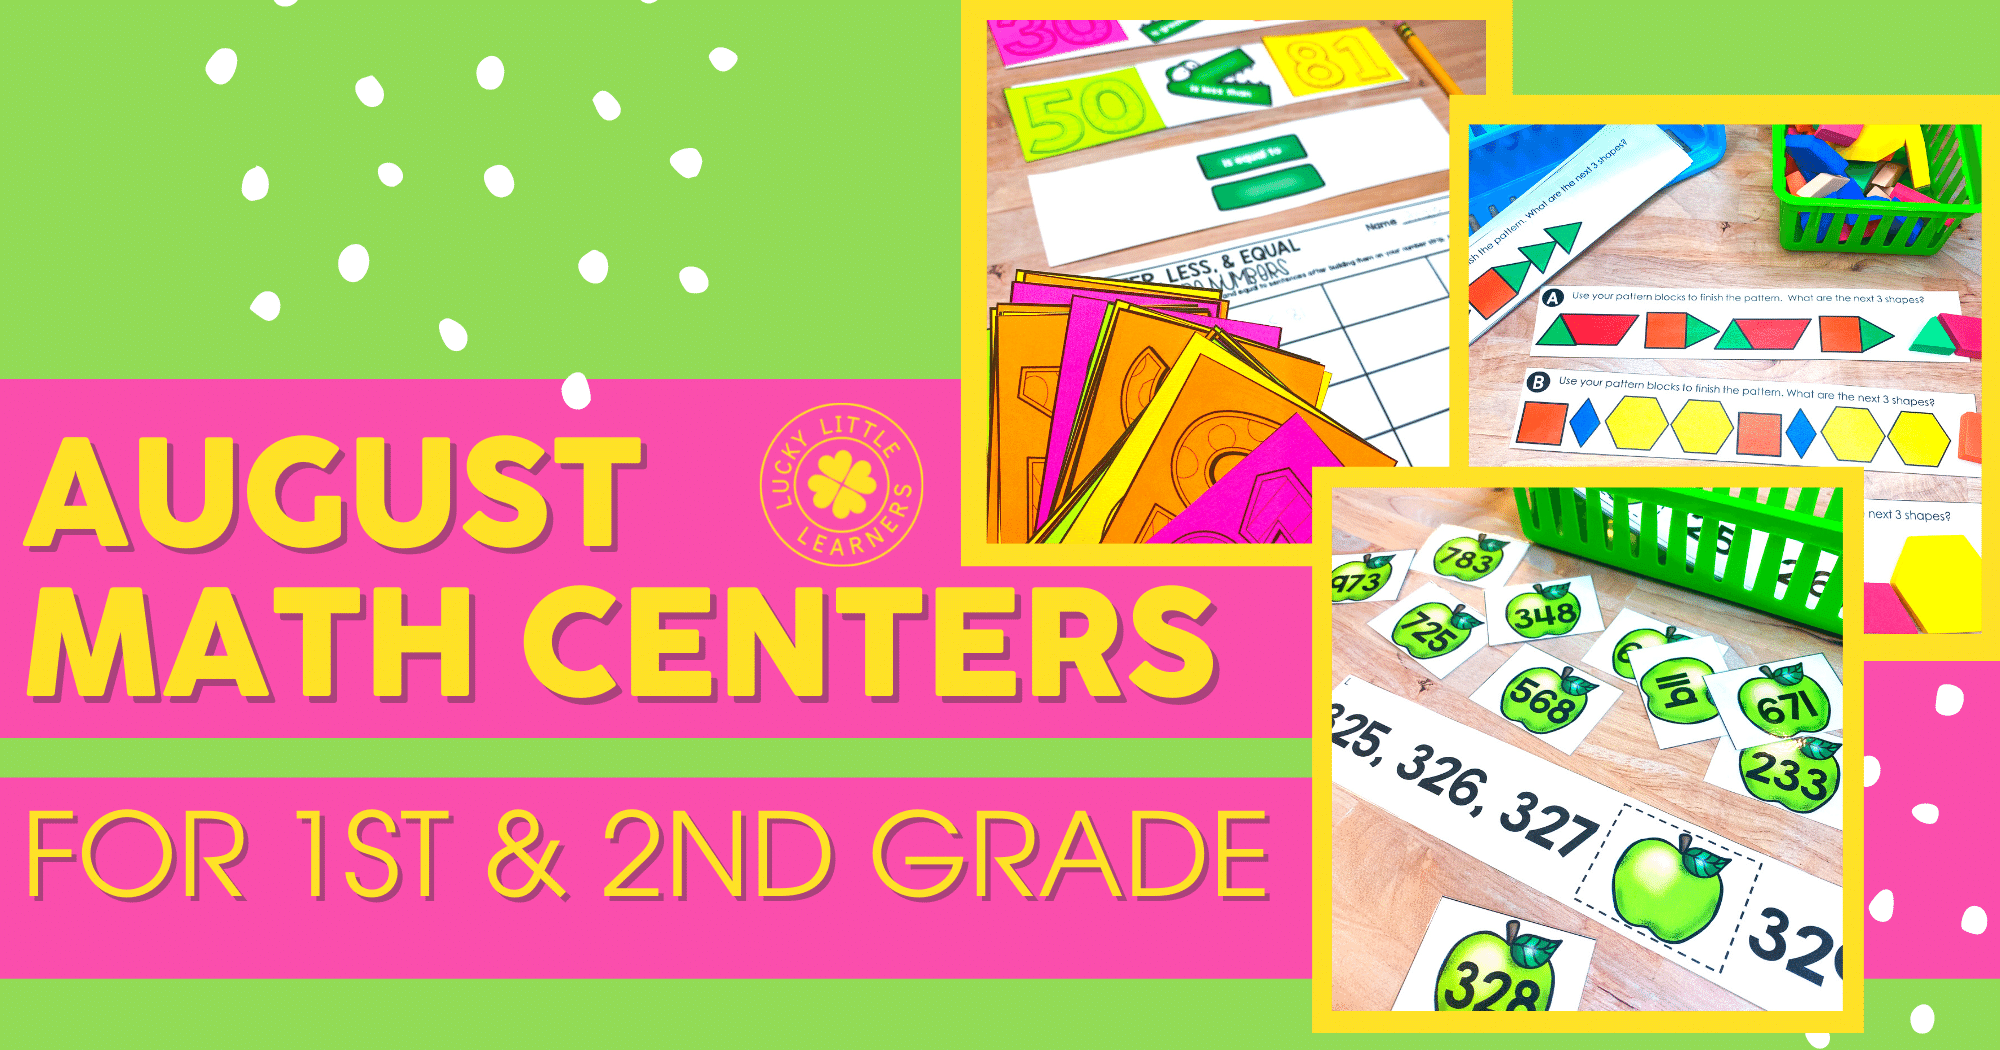 August Math Centers for first and second grade